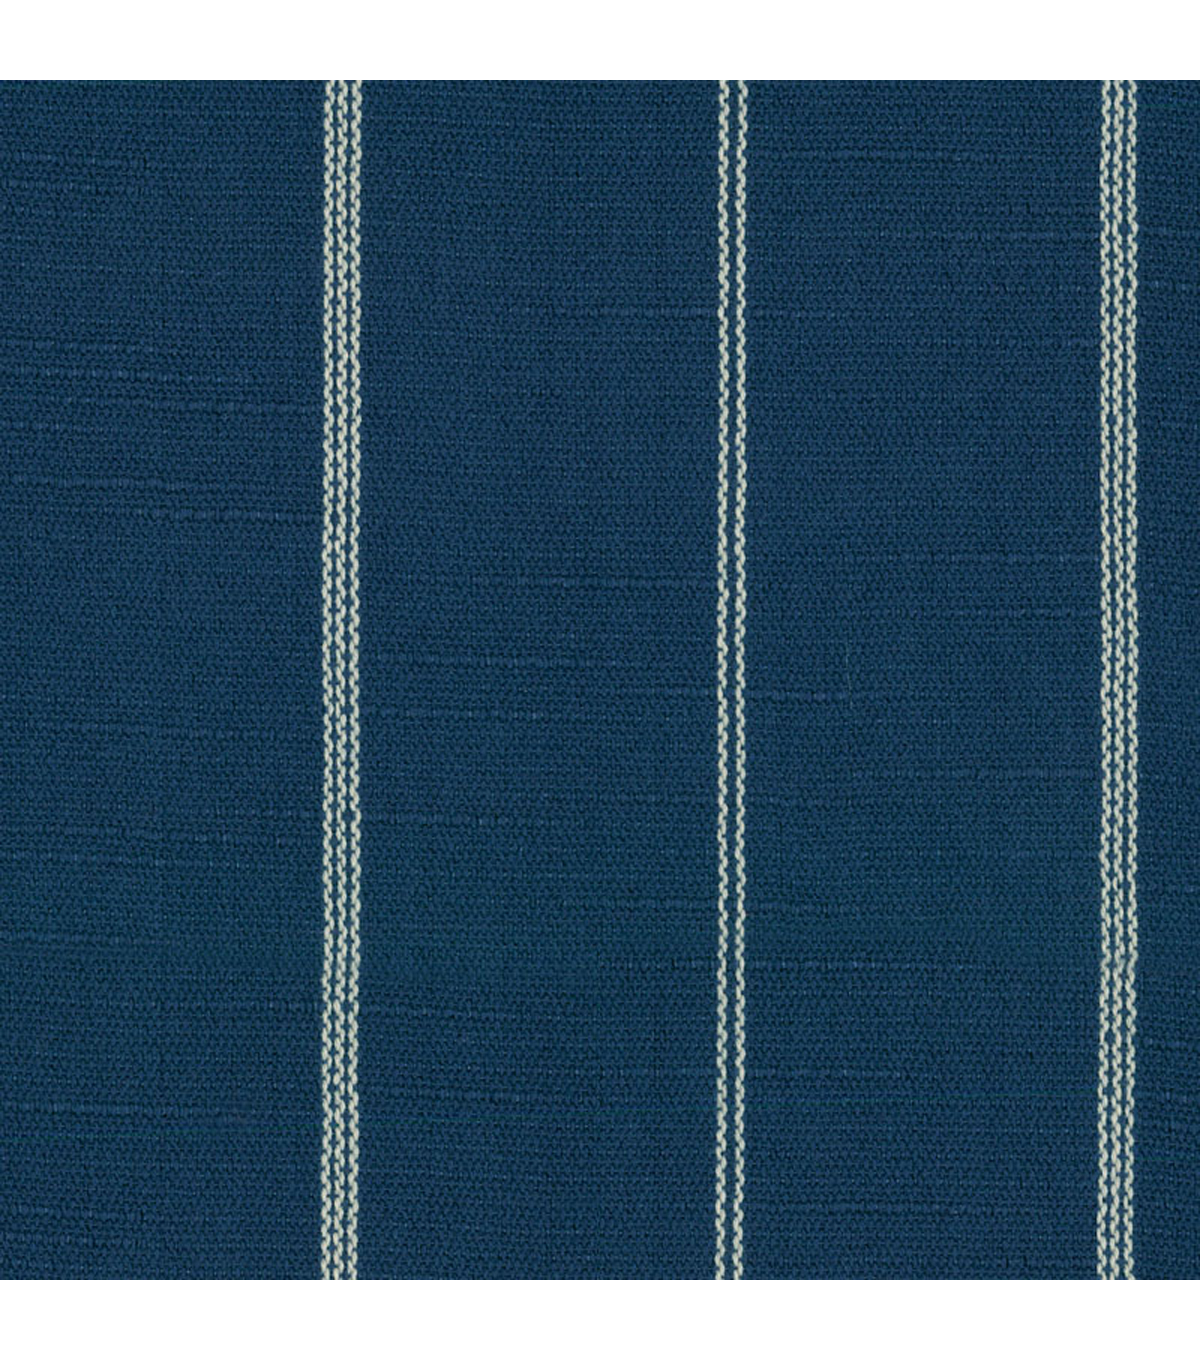 Richloom Studio Multi-Purpose Decor Fabric 54\u0022-Simone Pacific